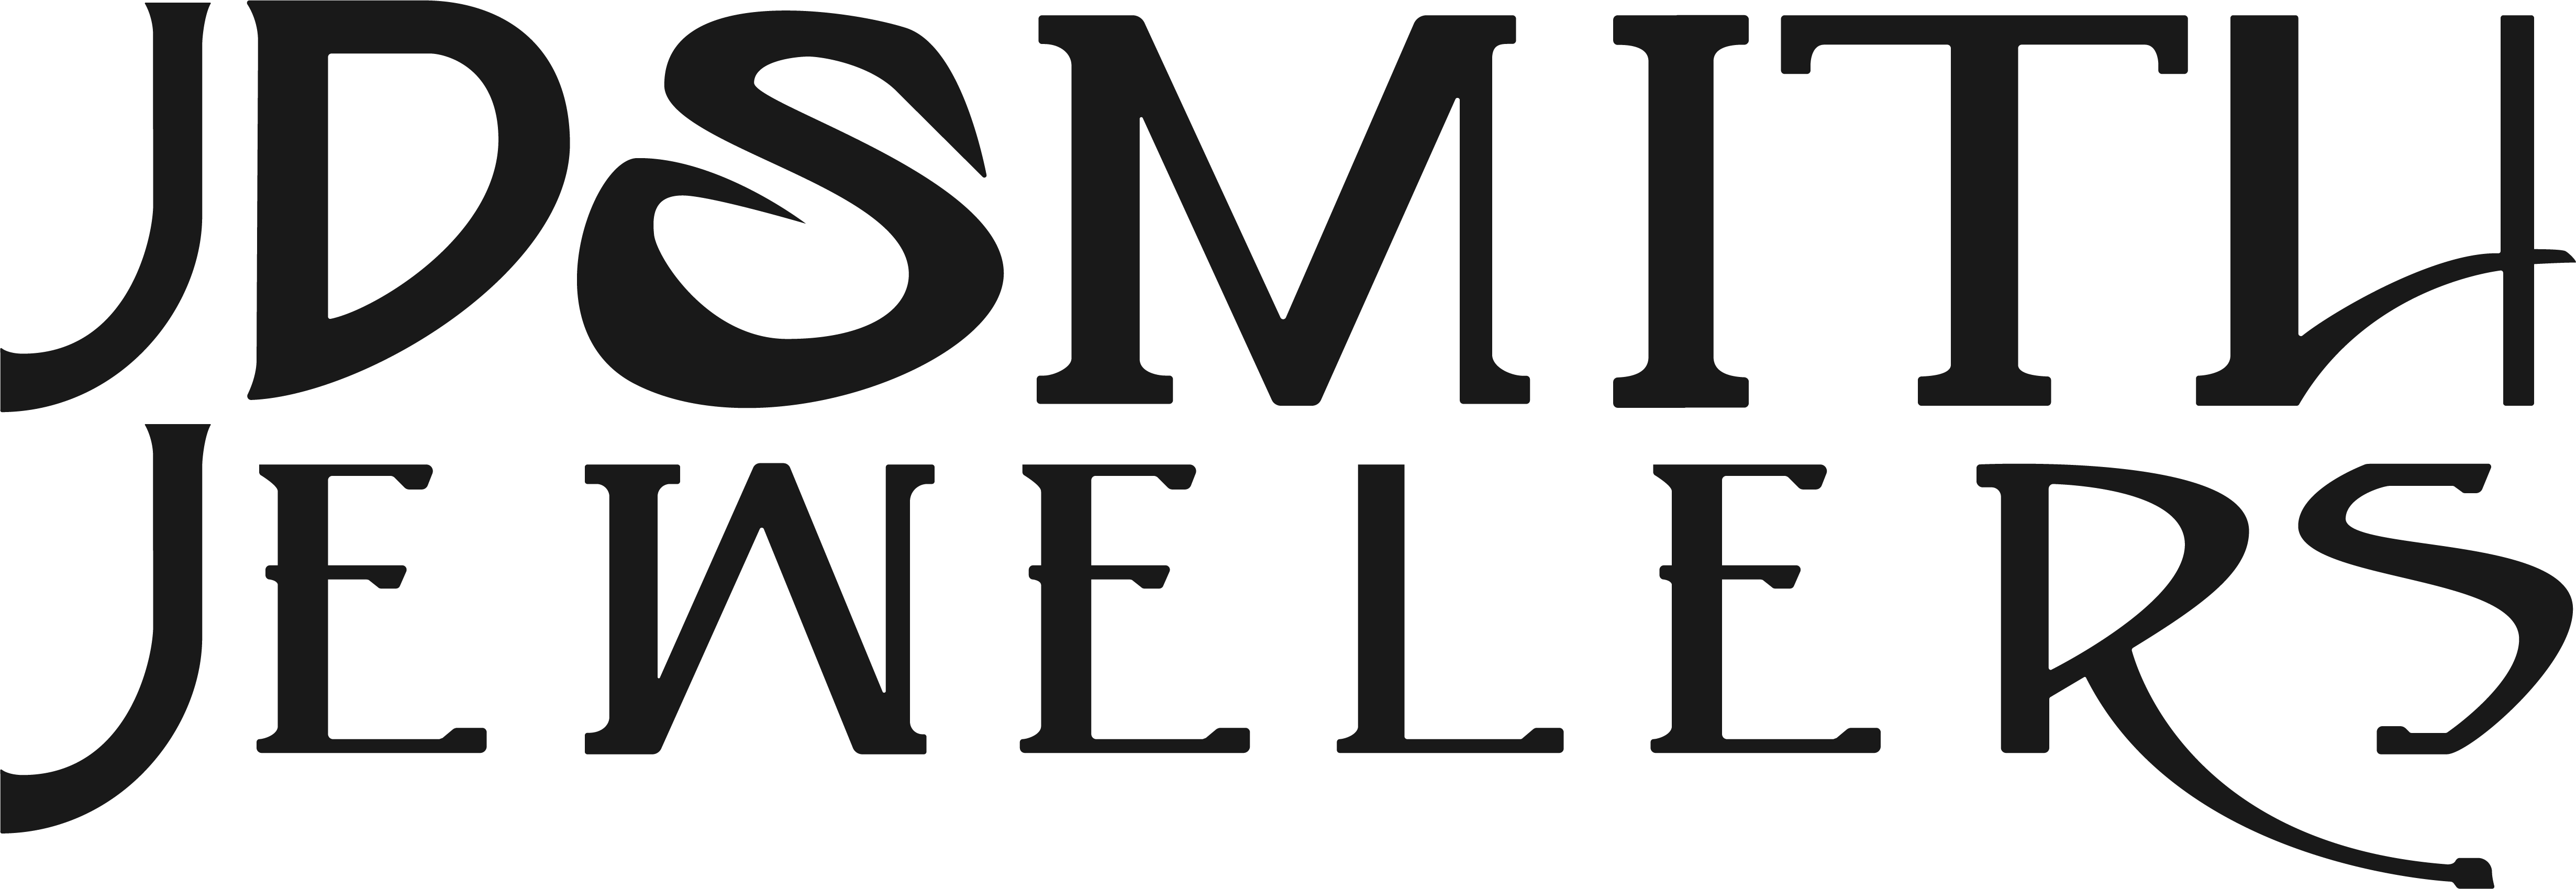 J D Smith Jewelers logo